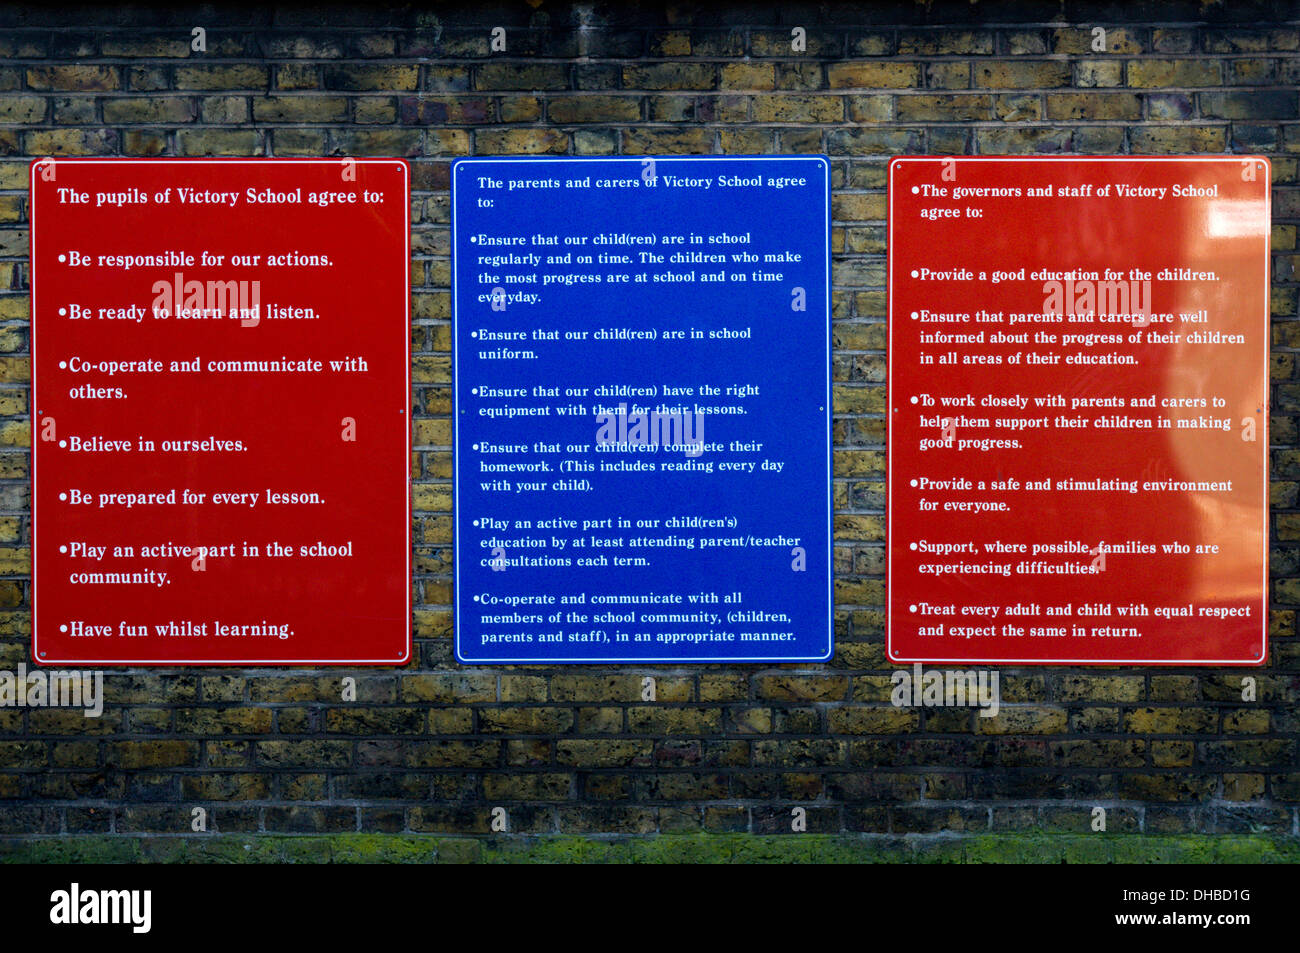 A school's Mission Statement, displayed outside, has rights and responsibilities for pupils, parents, governors and staff. - Stock Image